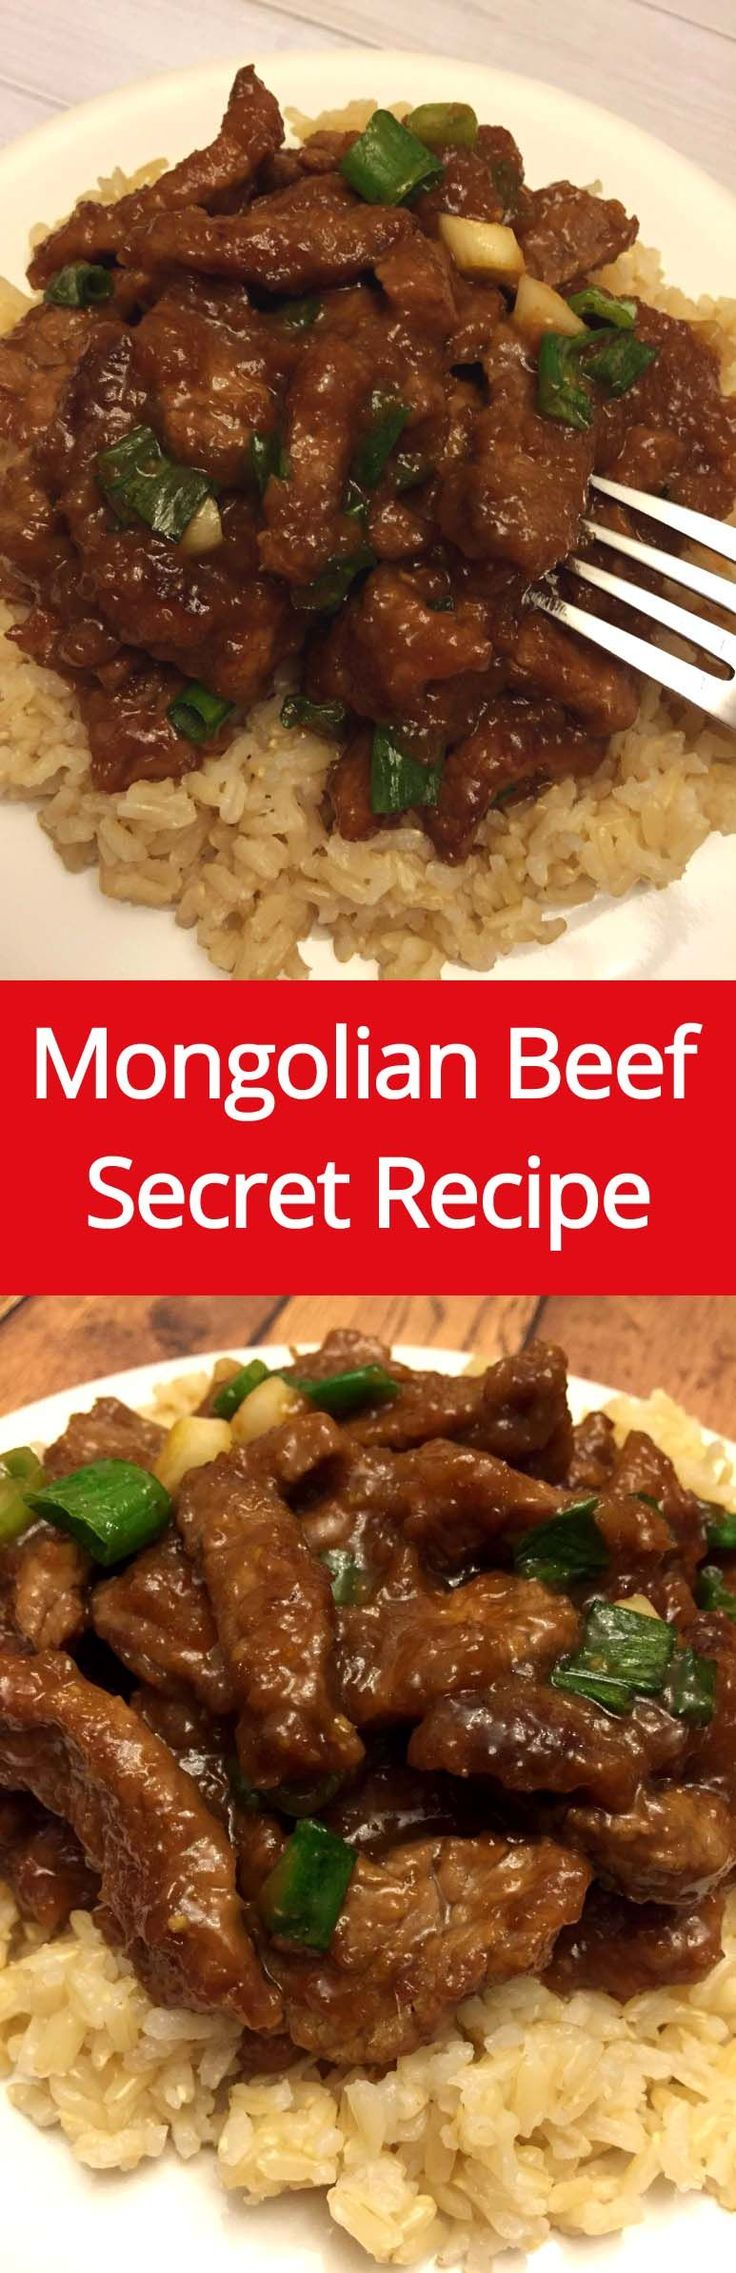 Mongolian Beef Recipe - Secret Copycat Recipe To Make Mongolian Beef Like P.F.Chang's! | MelanieCooks.com